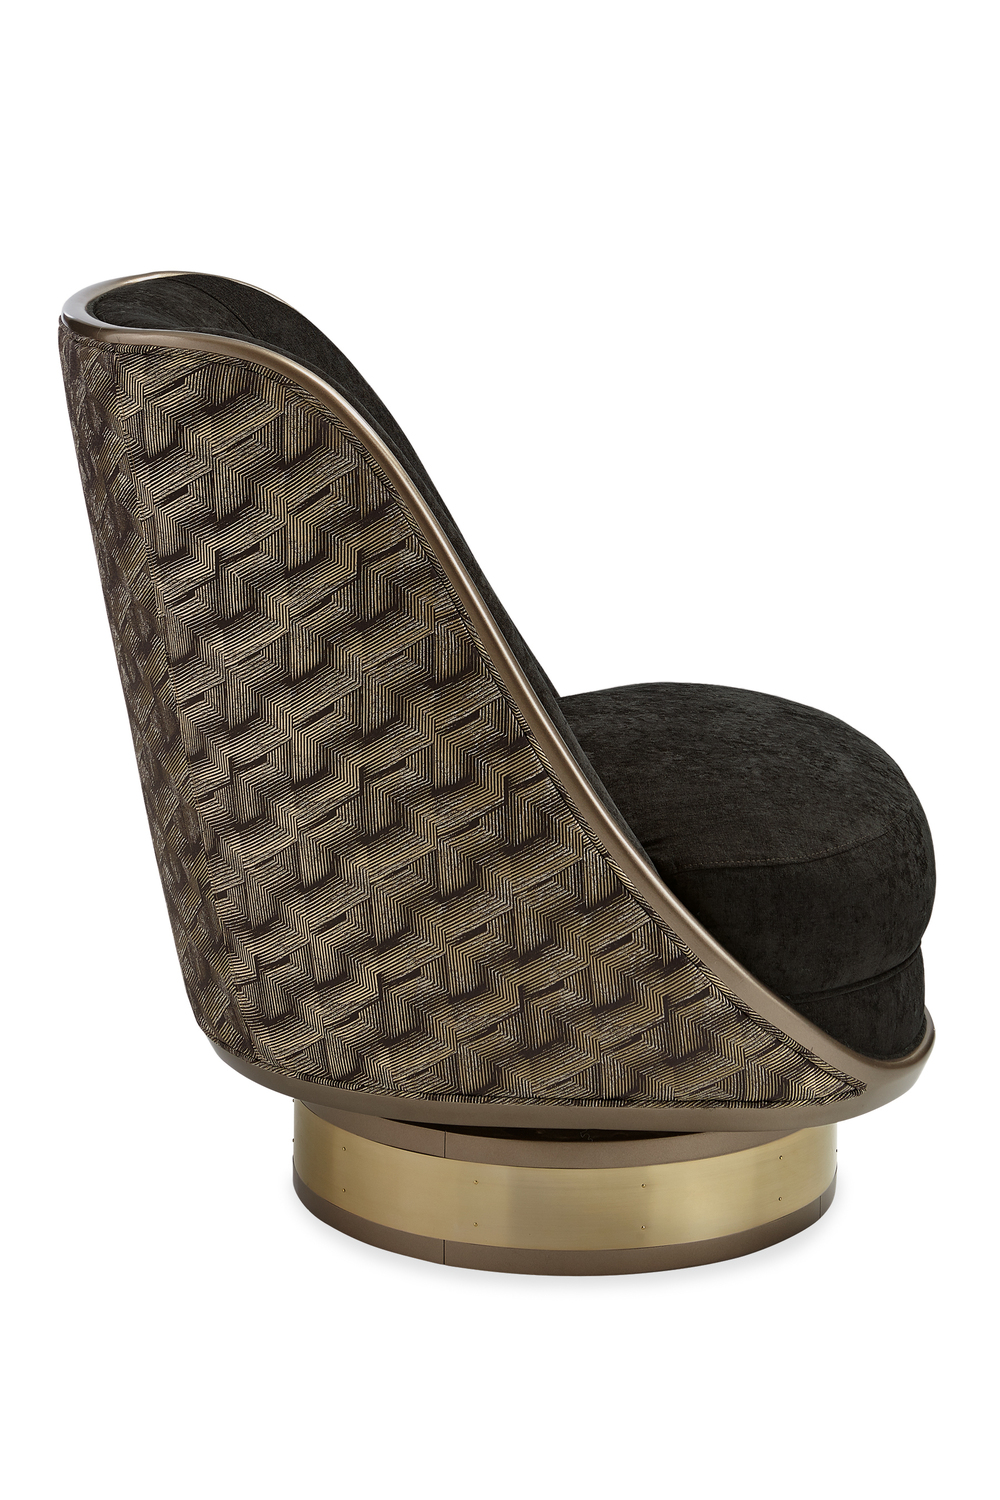 Caracole - Go For A Spin Chair